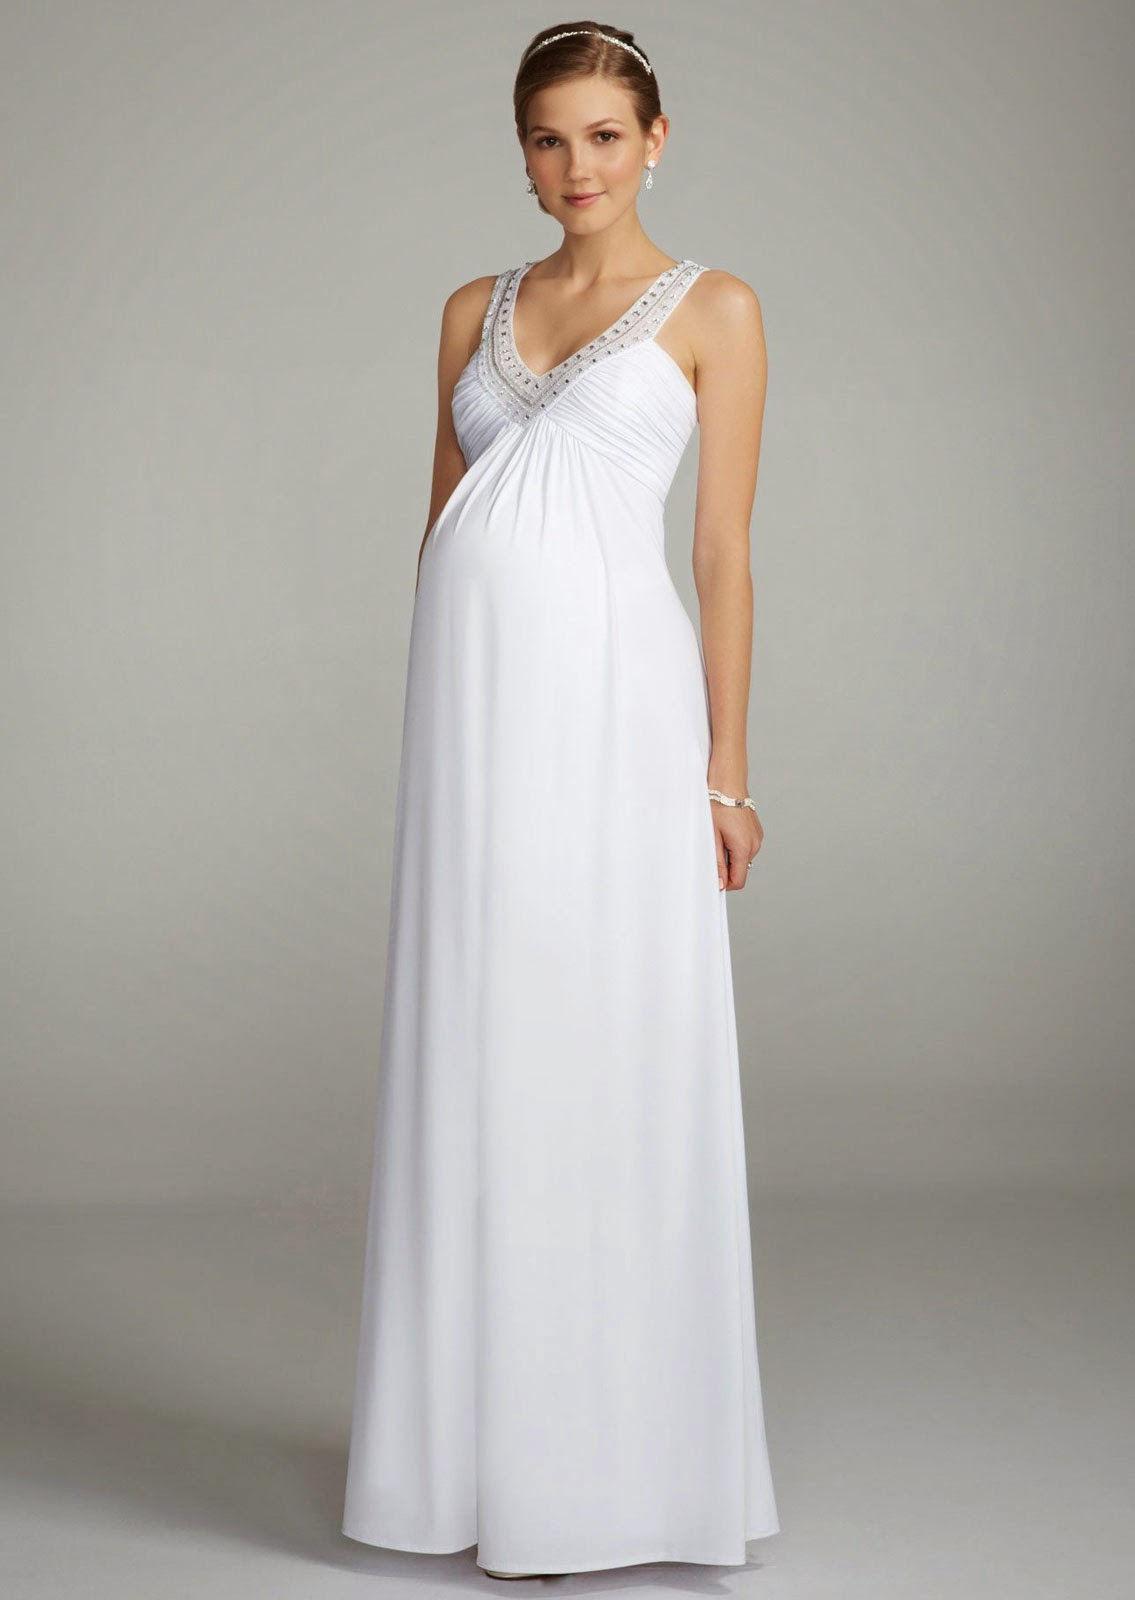 Amore Wedding Dresses - Page 450 of 473 - Bridesmaid Dresses Uk